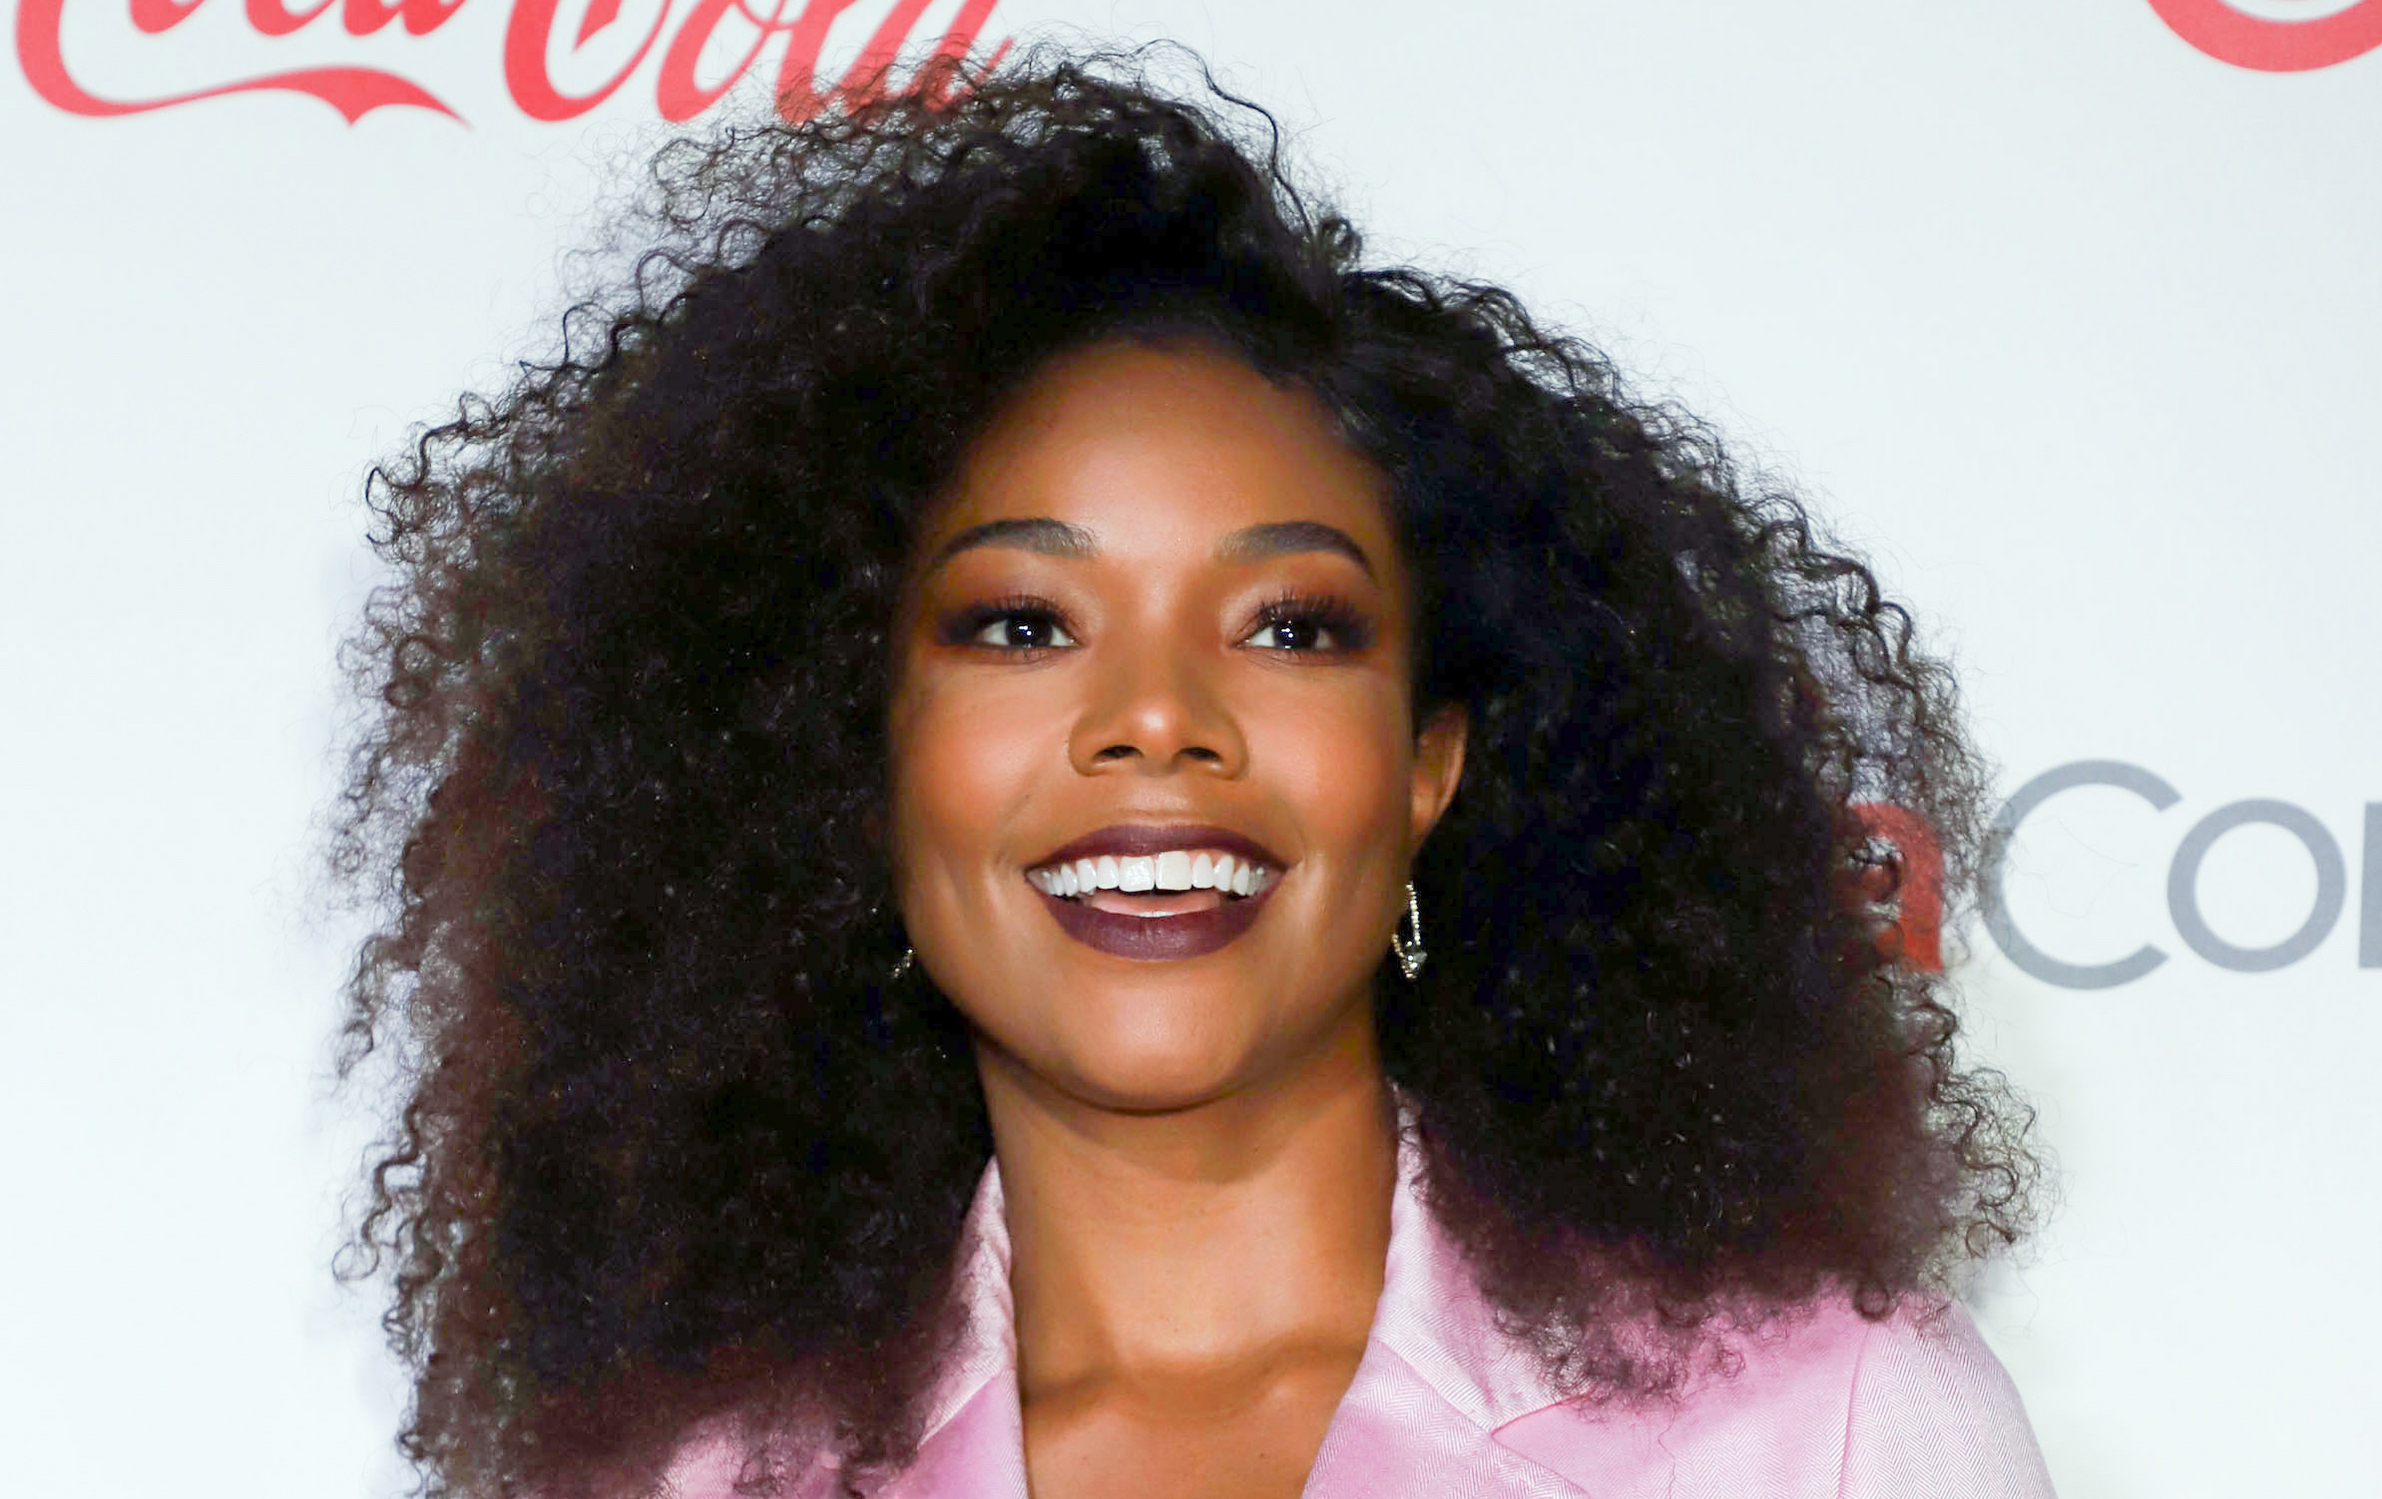 Gabrielle Union Says 'It Feels Normal' For 11-Year-Old Stepson To Come Out As Gay